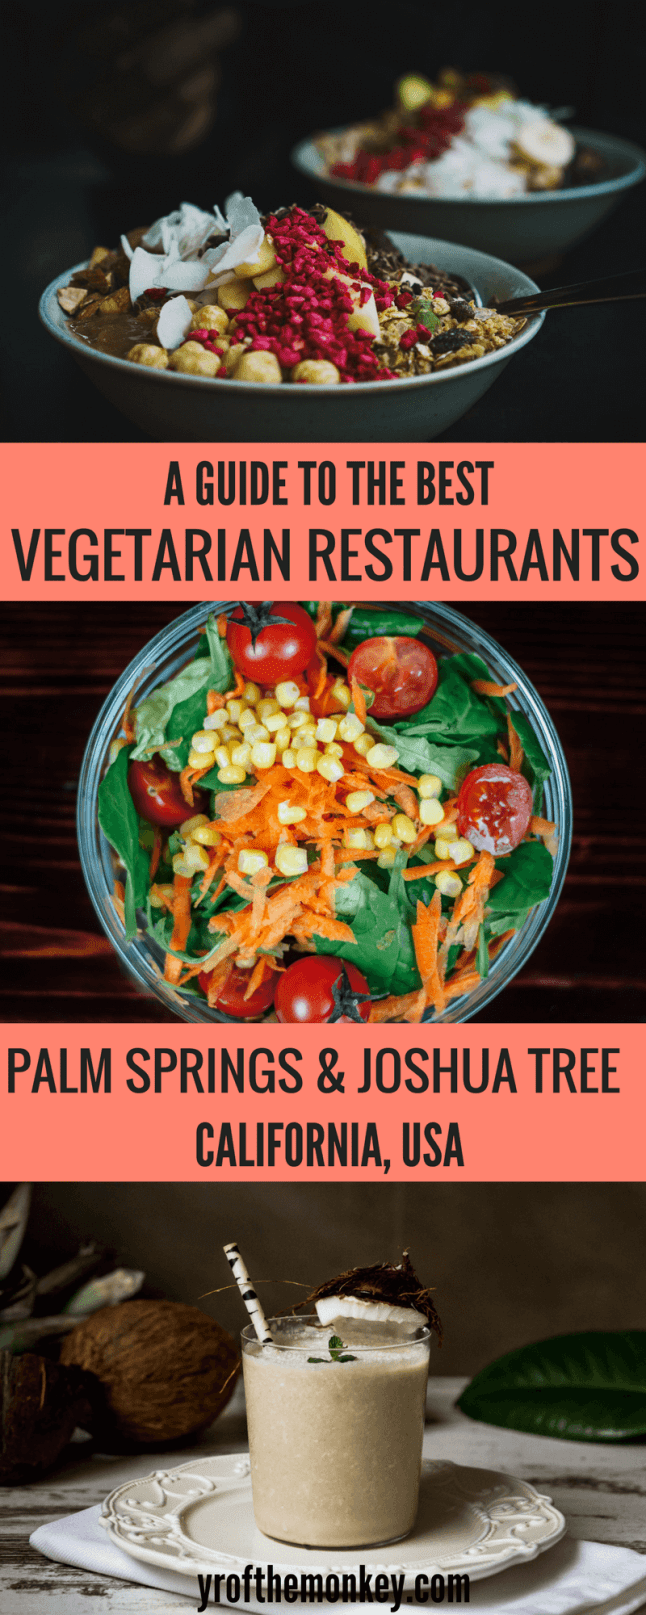 Vegetarian Restaurants Palm Springs Is Your Guide To The Best And Those Near Joshua Tree